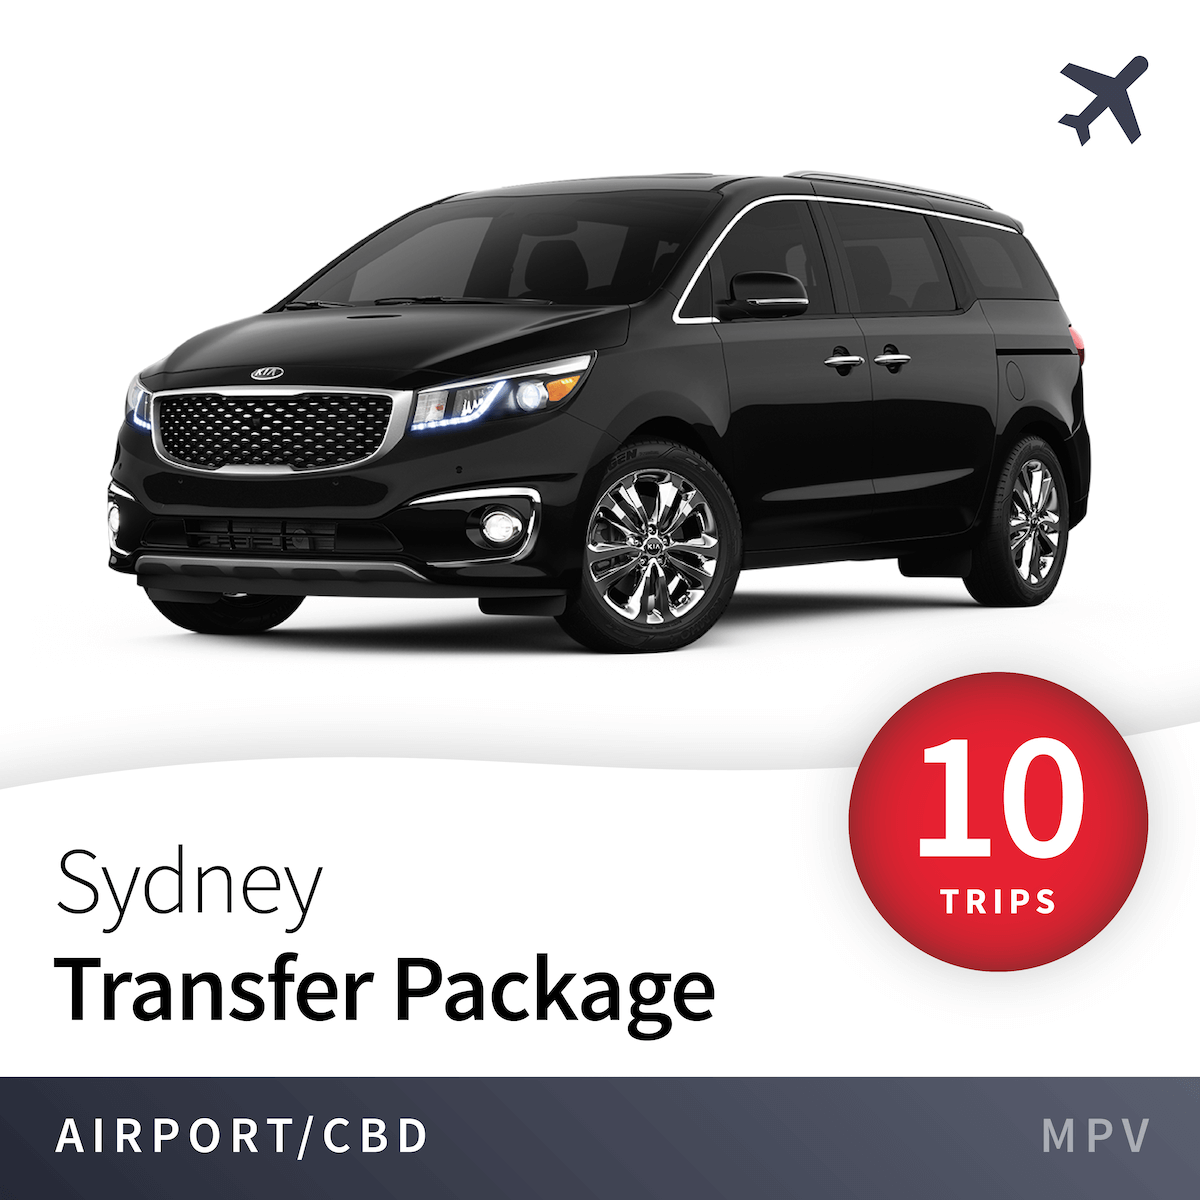 Sydney Airport Transfer Package - MPV (10 Trips) 6